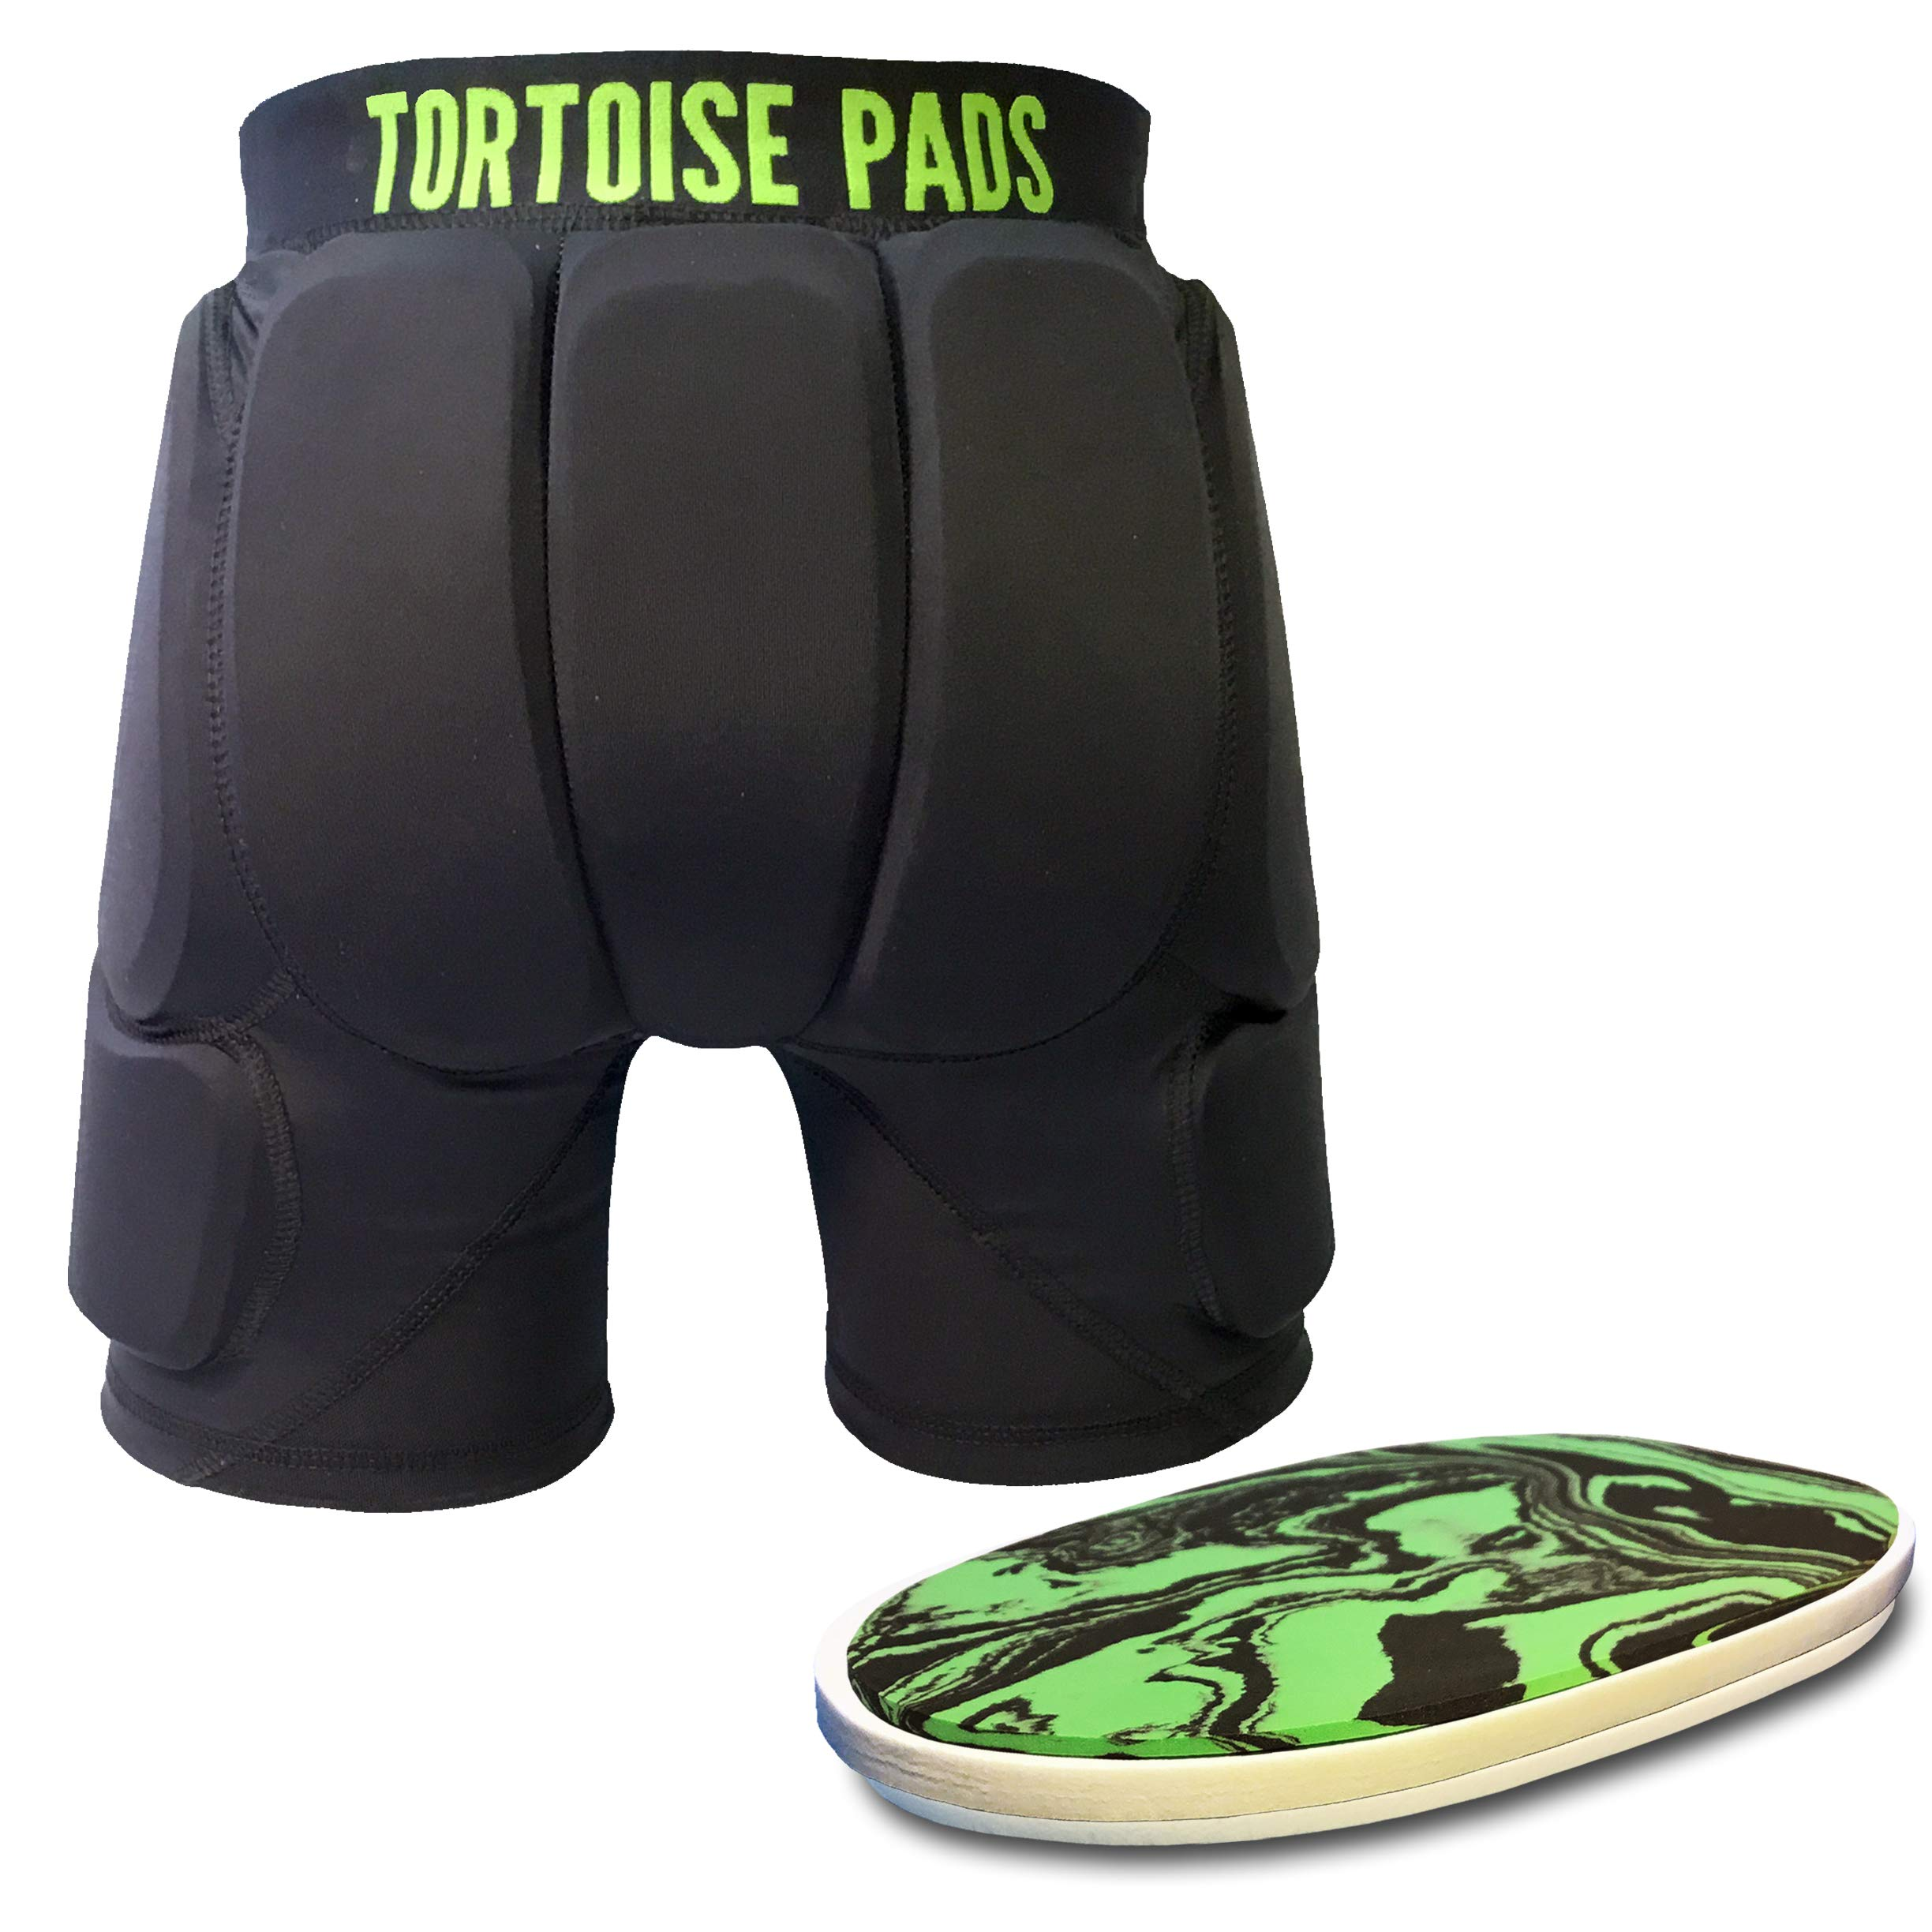 Tortoise Pads T2 High Impact Protection Padded Shorts with Dual Density EVA Foam (Adult XX-Large)